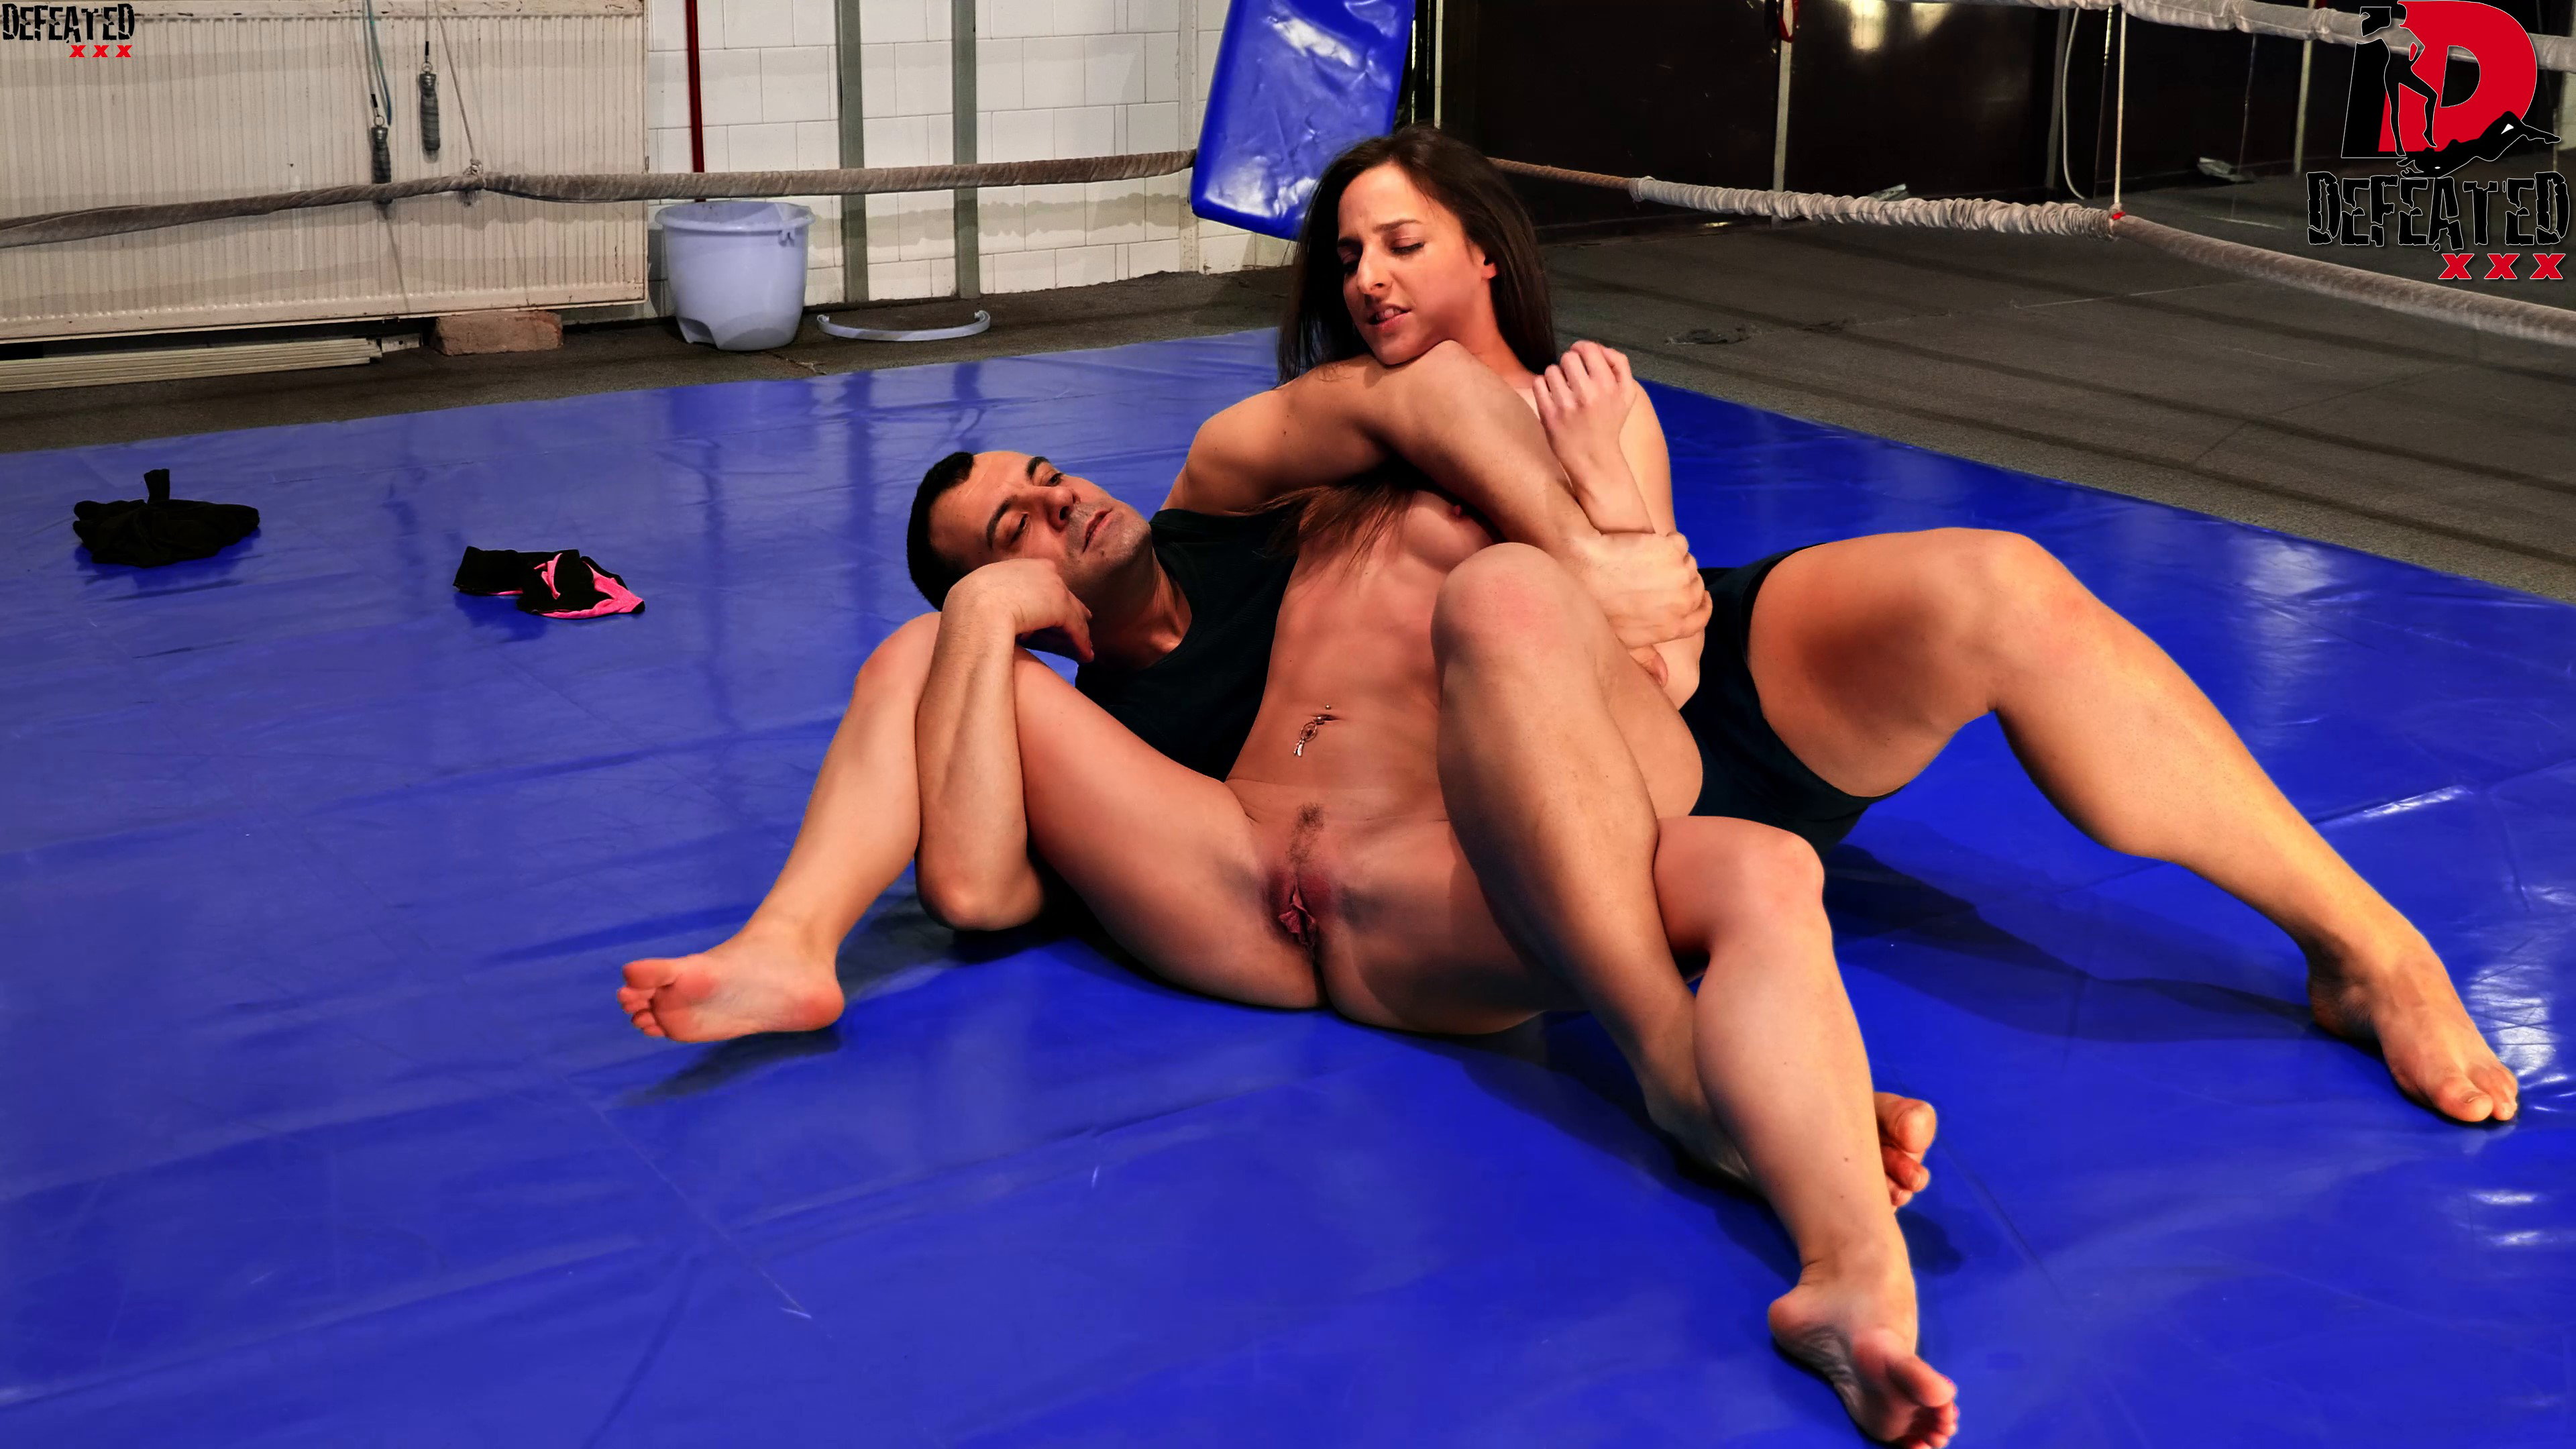 DEFEATED-MXD66---Amirah-Antonio-(132)